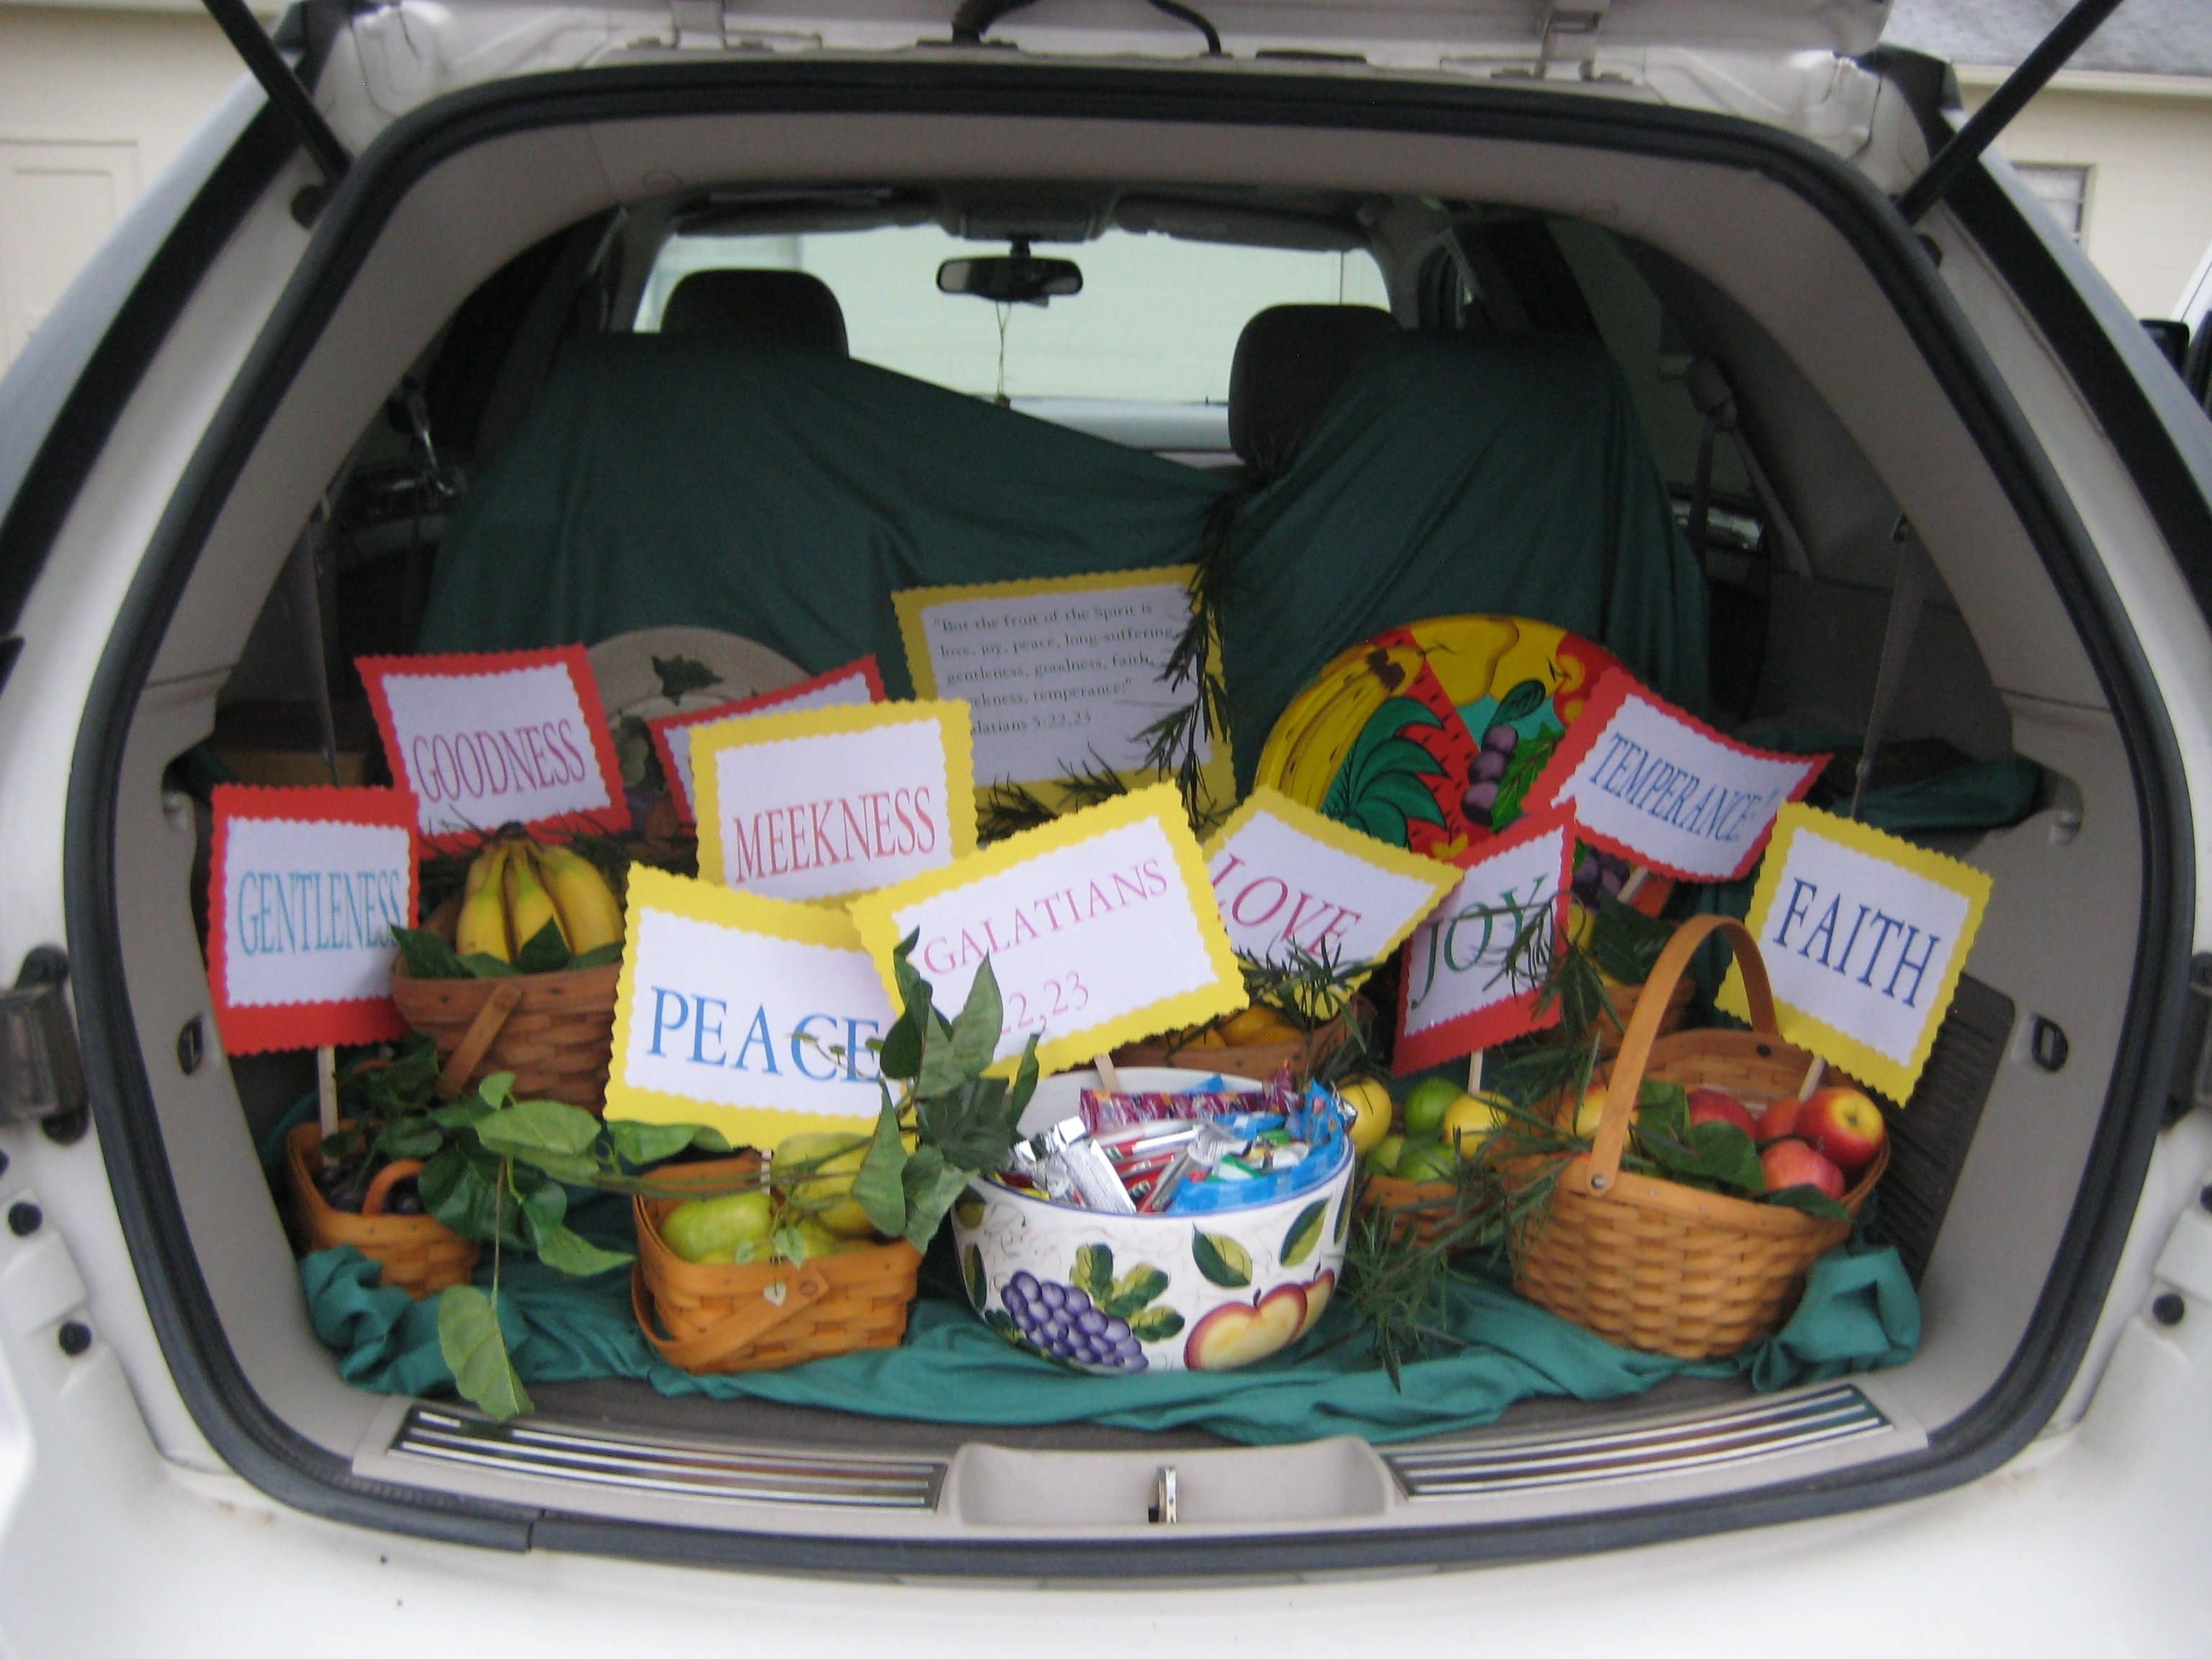 10 Ideal Christian Trunk Or Treat Ideas bible story trunk or treat fruits of the spirit galatians 52223 2 2020